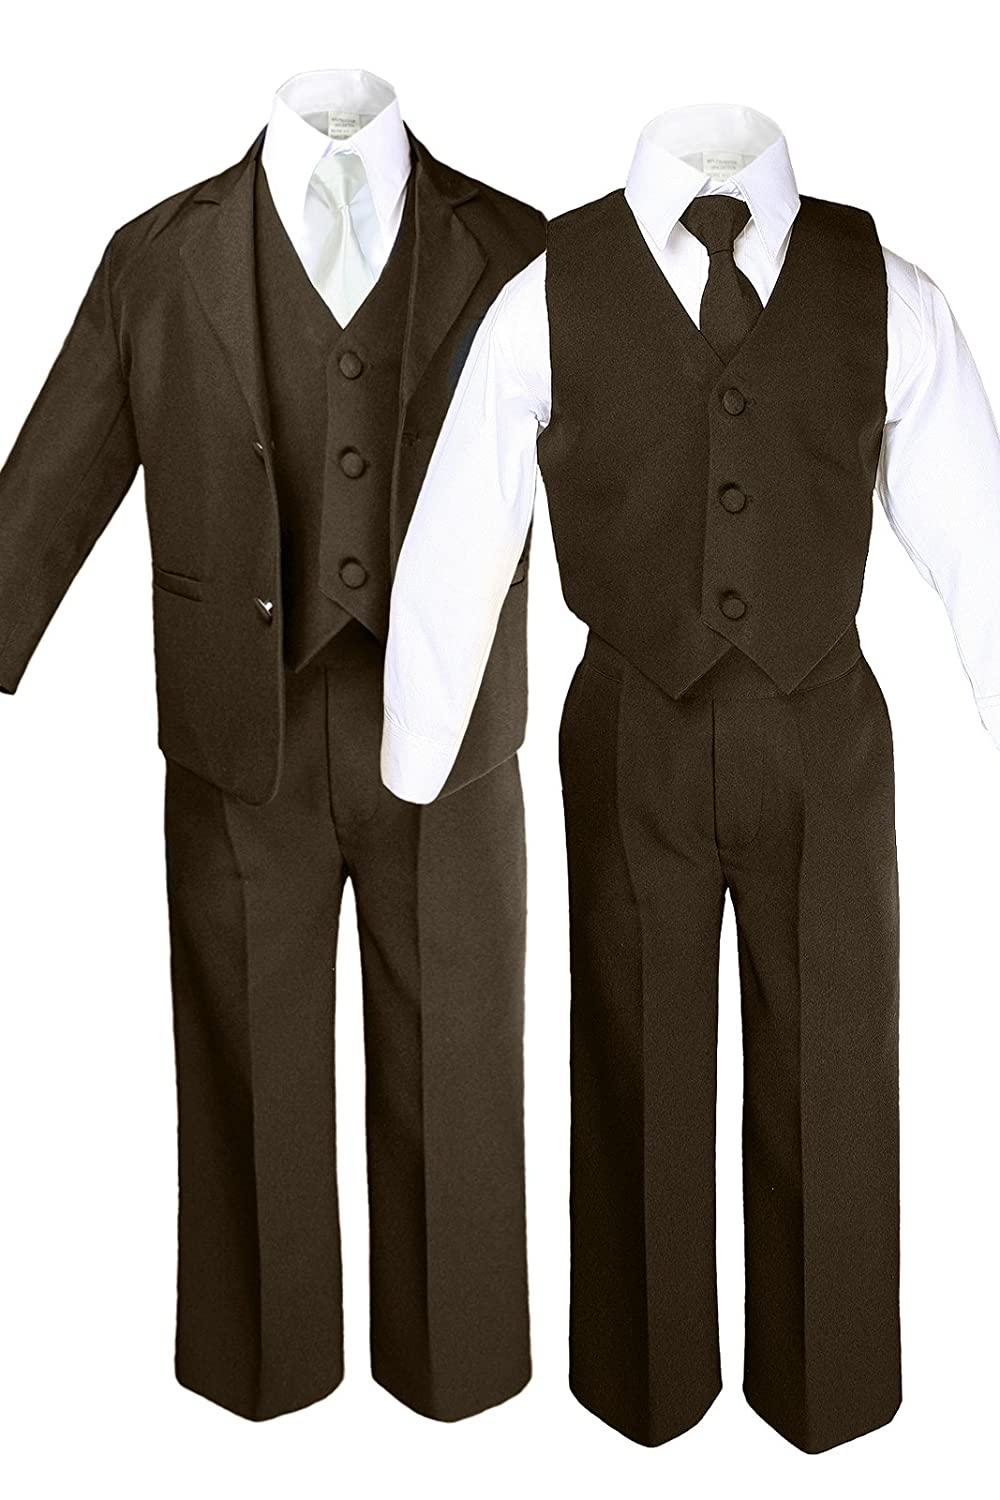 Unotux 6pc Boys Dark Brown Suits Sets with Satin Ivory Necktie Outfits All Size